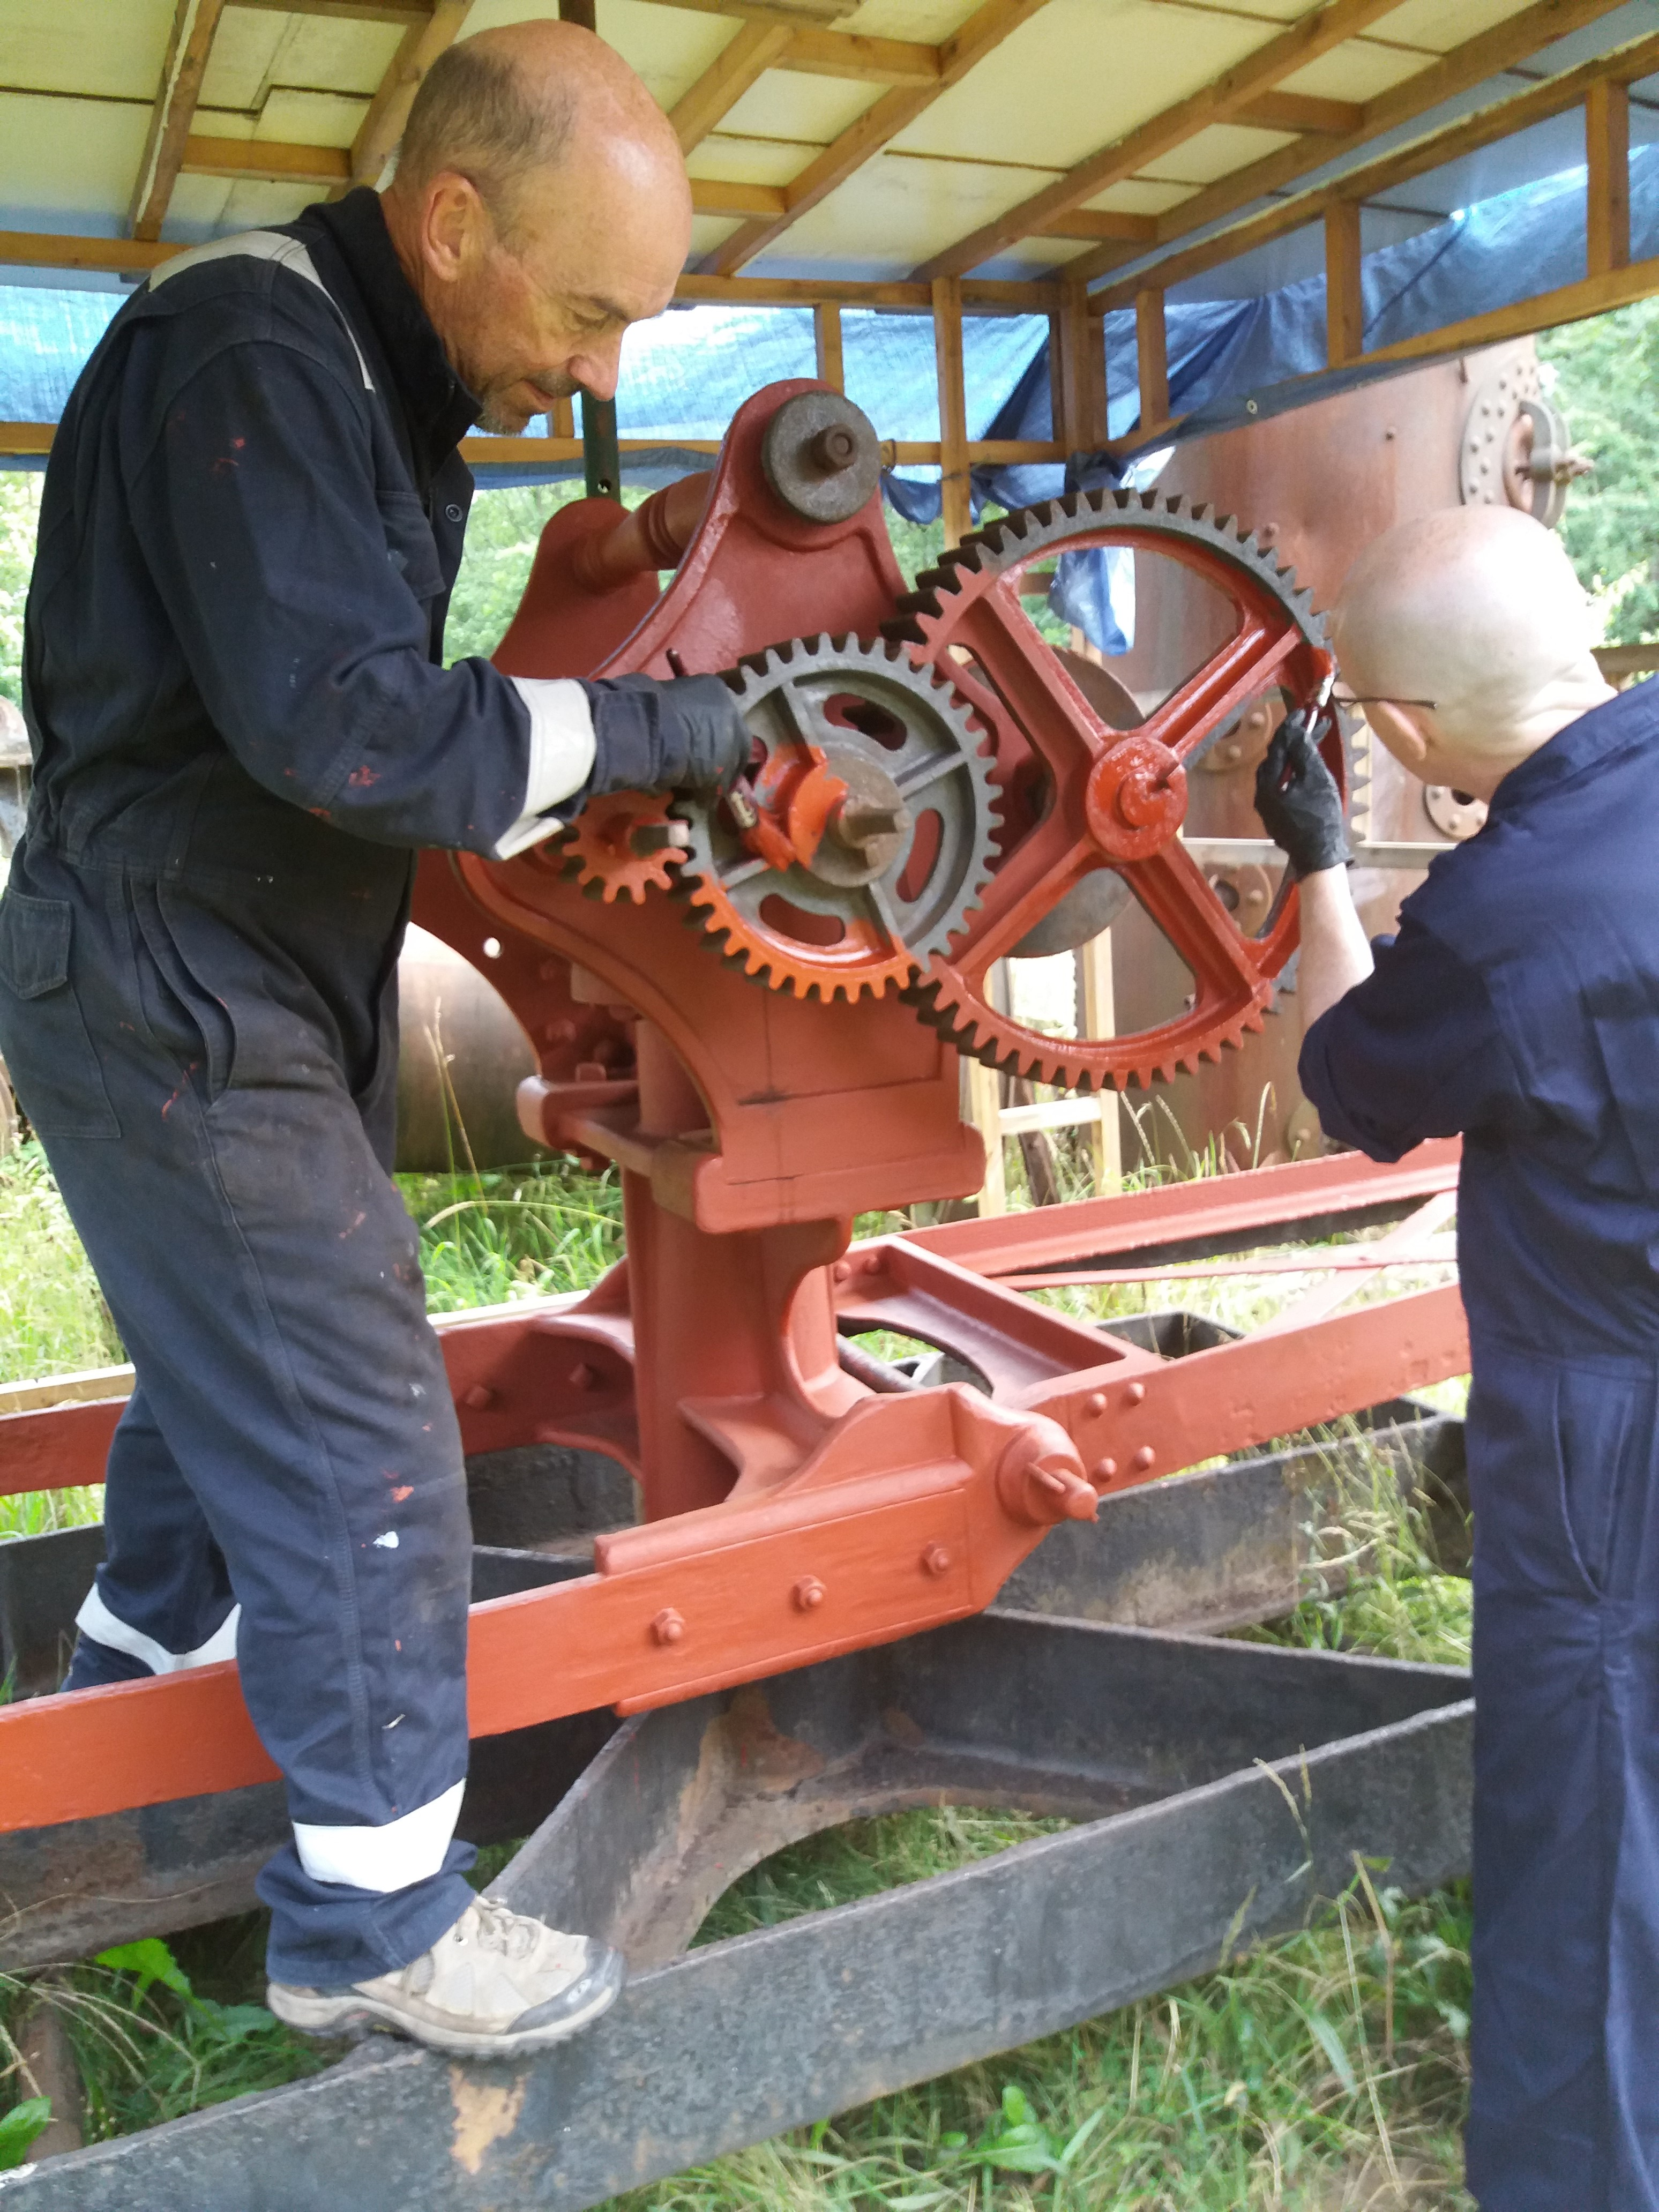 Two men in overalls painting cogs on part of a machine.